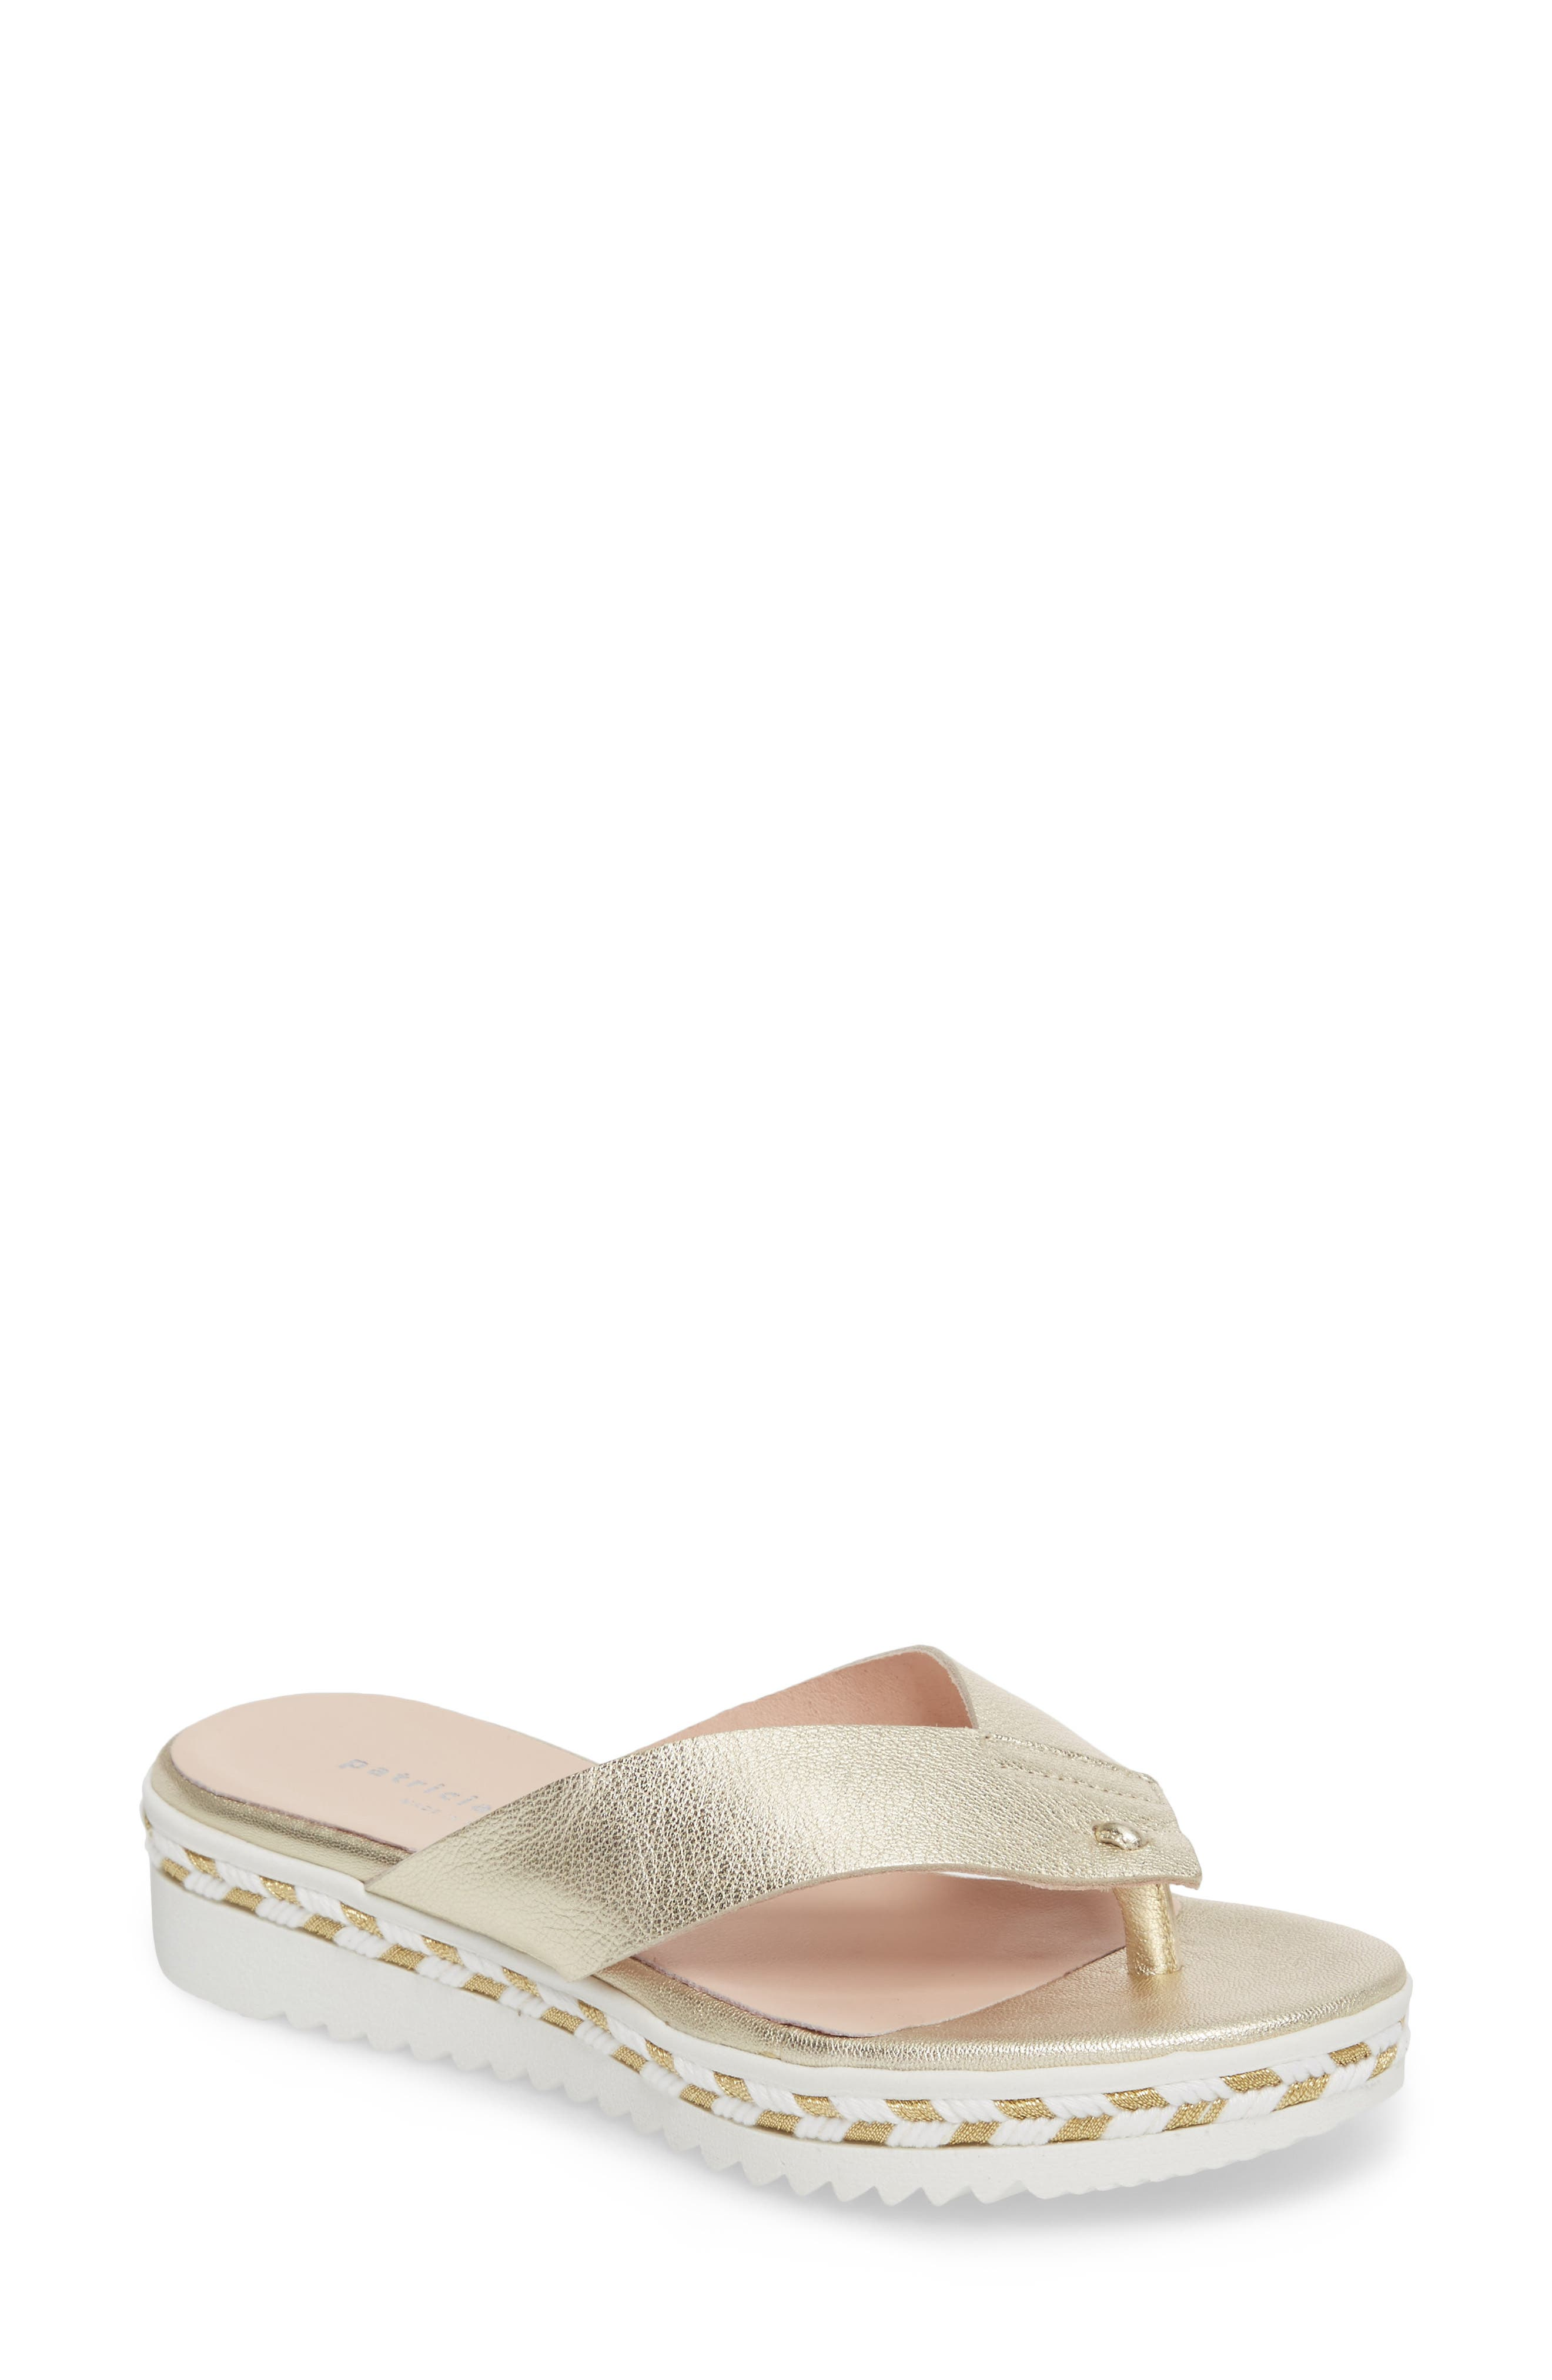 Brooklyn Wedge Flip Flop,                         Main,                         color, Gold Leather